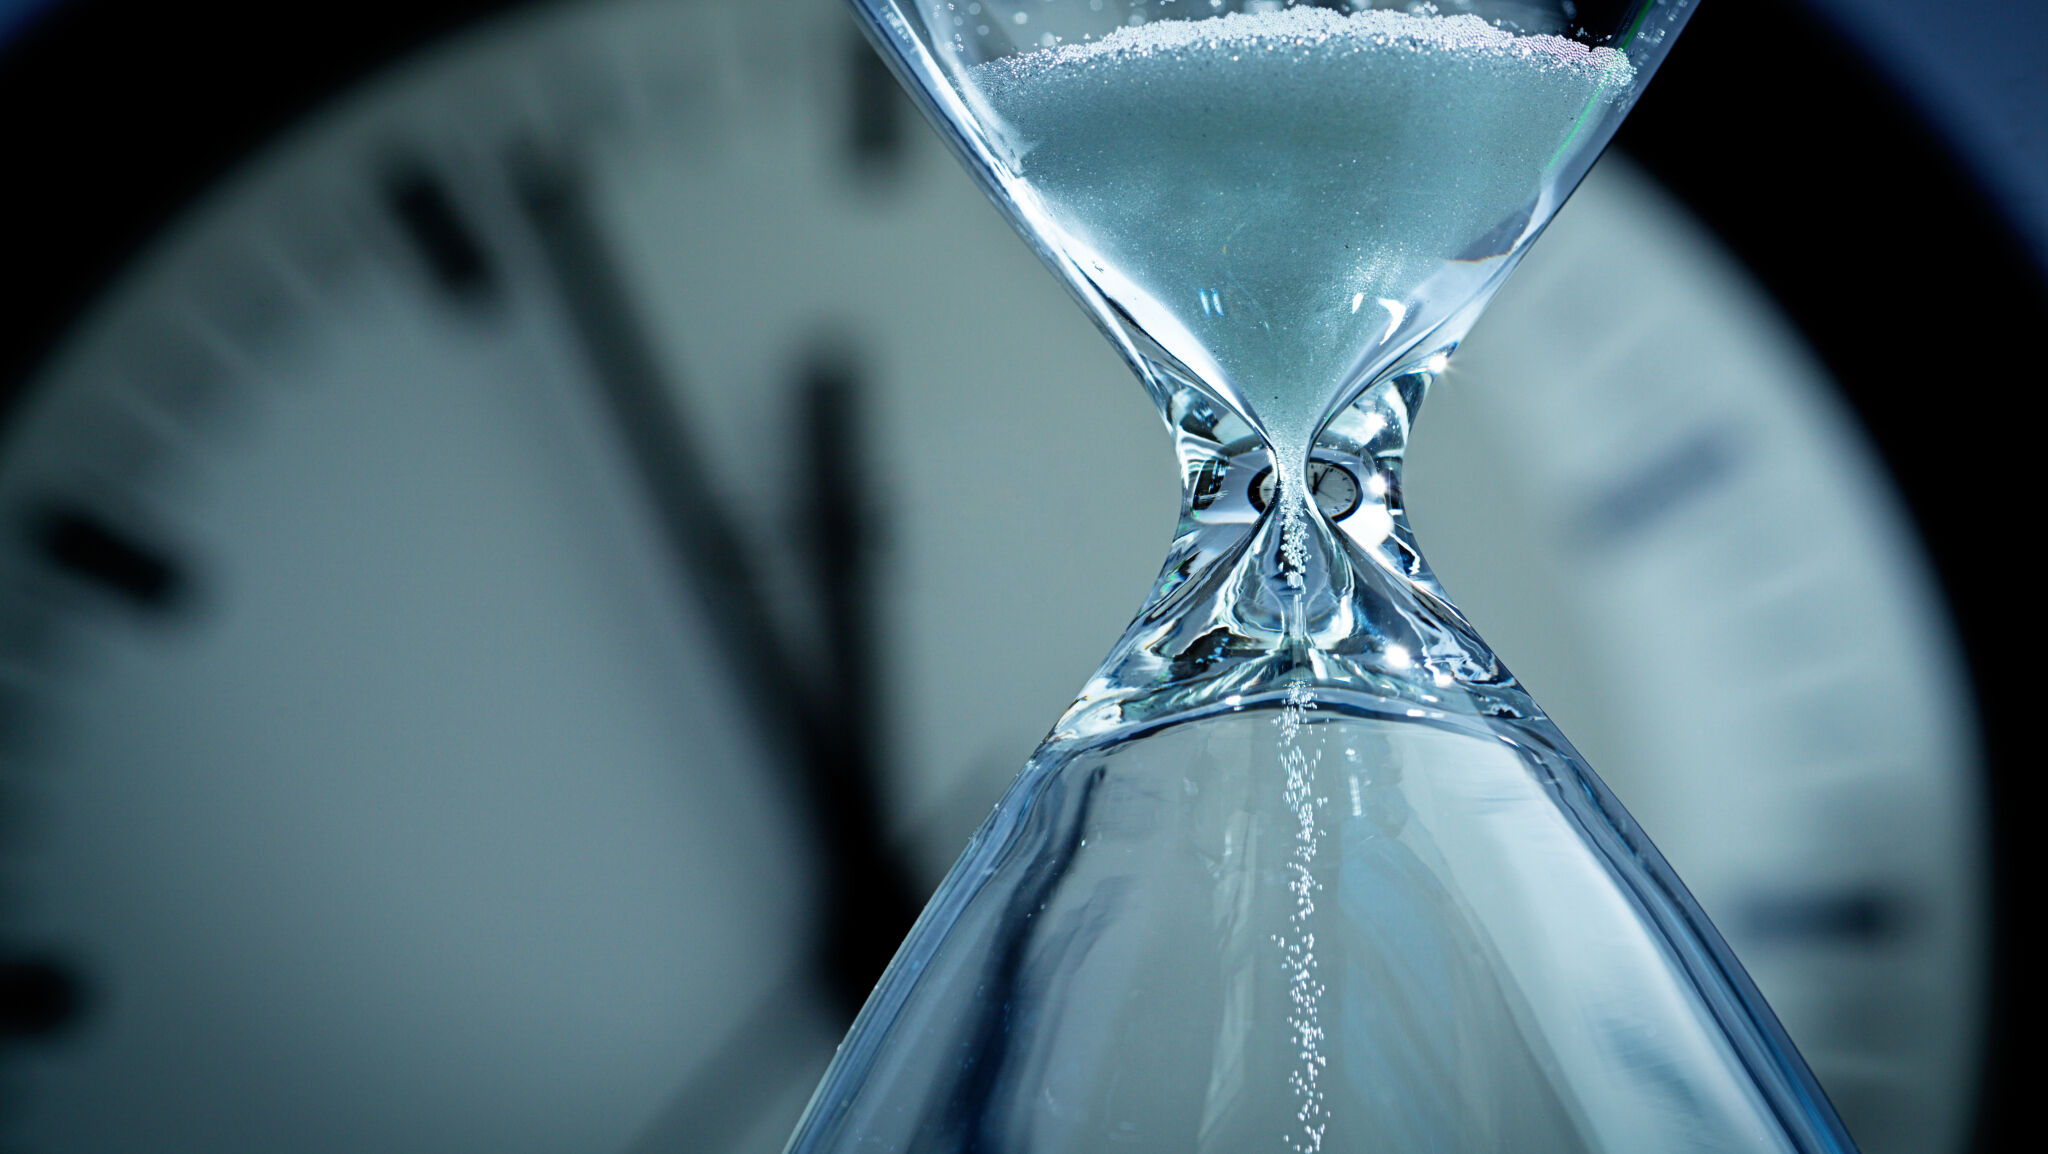 Are We in the End Time? This Pivotal End-Time Prophecy Shows Yes